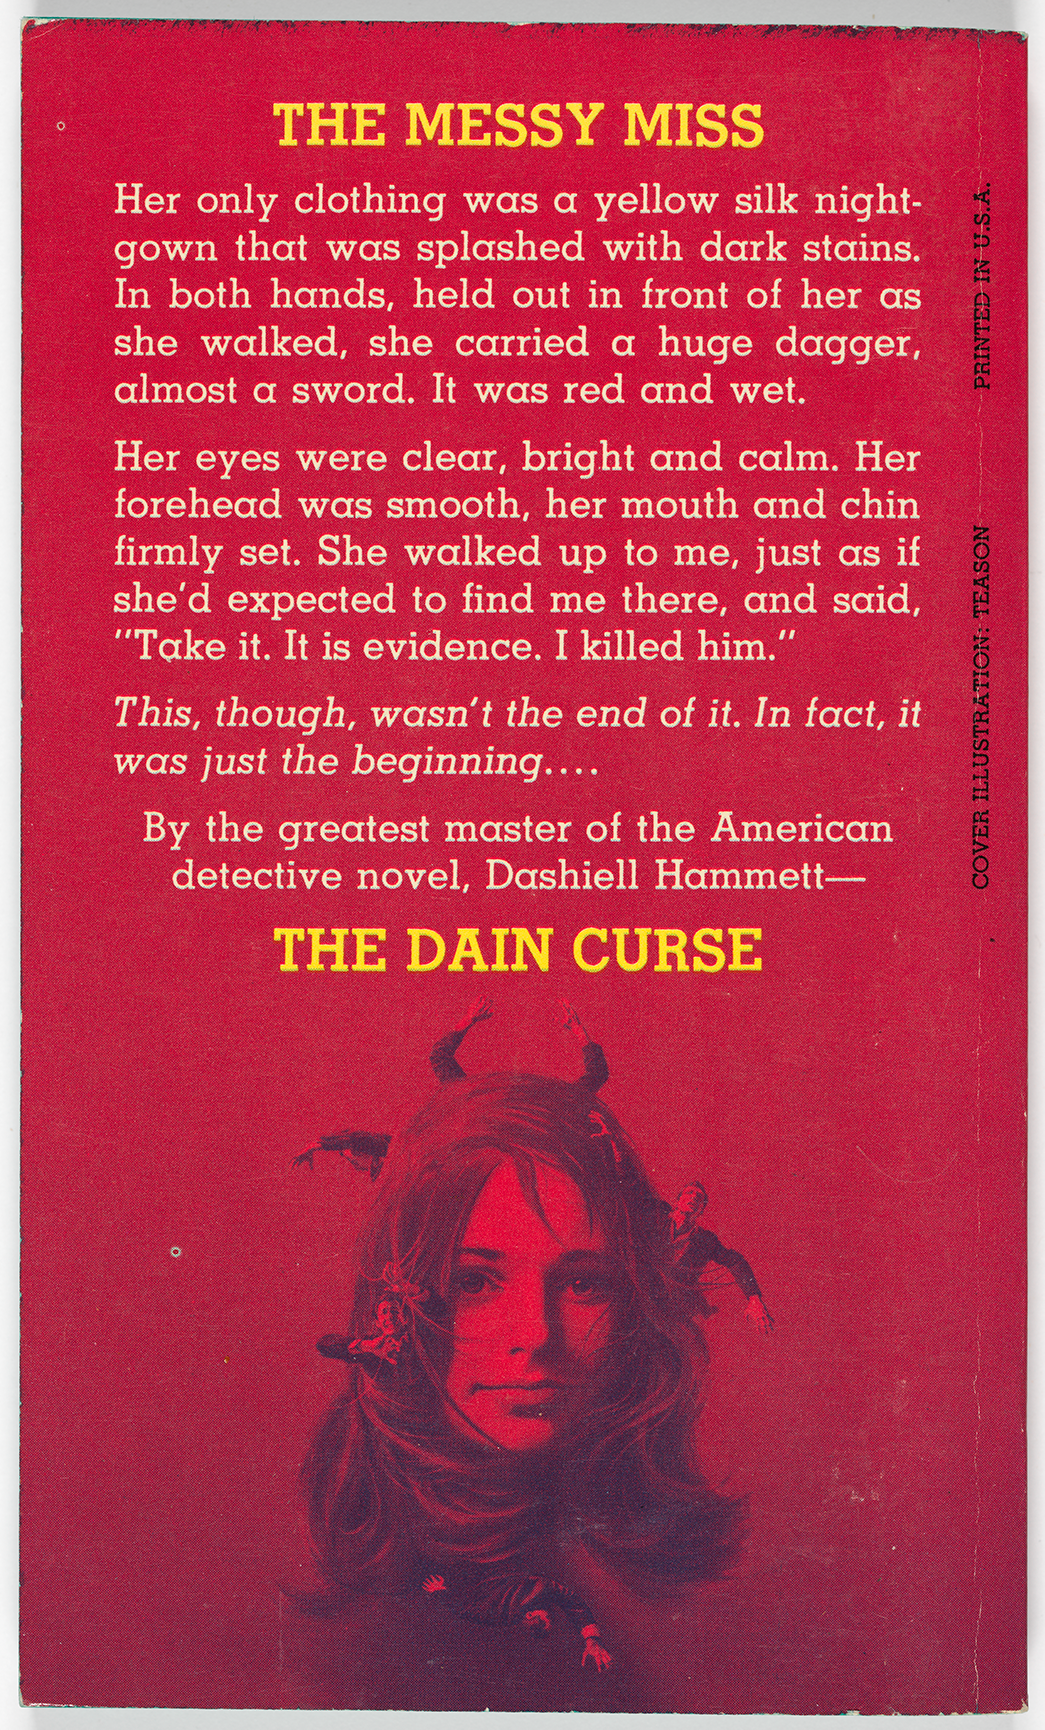 "The book summary begins with a tagline, ""The messy miss,"" and continues to describe this young woman. ""Her only clothing was a yellow silk nightgown that was splashed with dark stains,"" it reads. The woman is carrying a giant dagger, which she presents to the narrator and says, ""Take it. It is evidence. I killed him."" There is also a miniature replica of the front cover image: a young woman's face, with a young man in various poses in her hair."